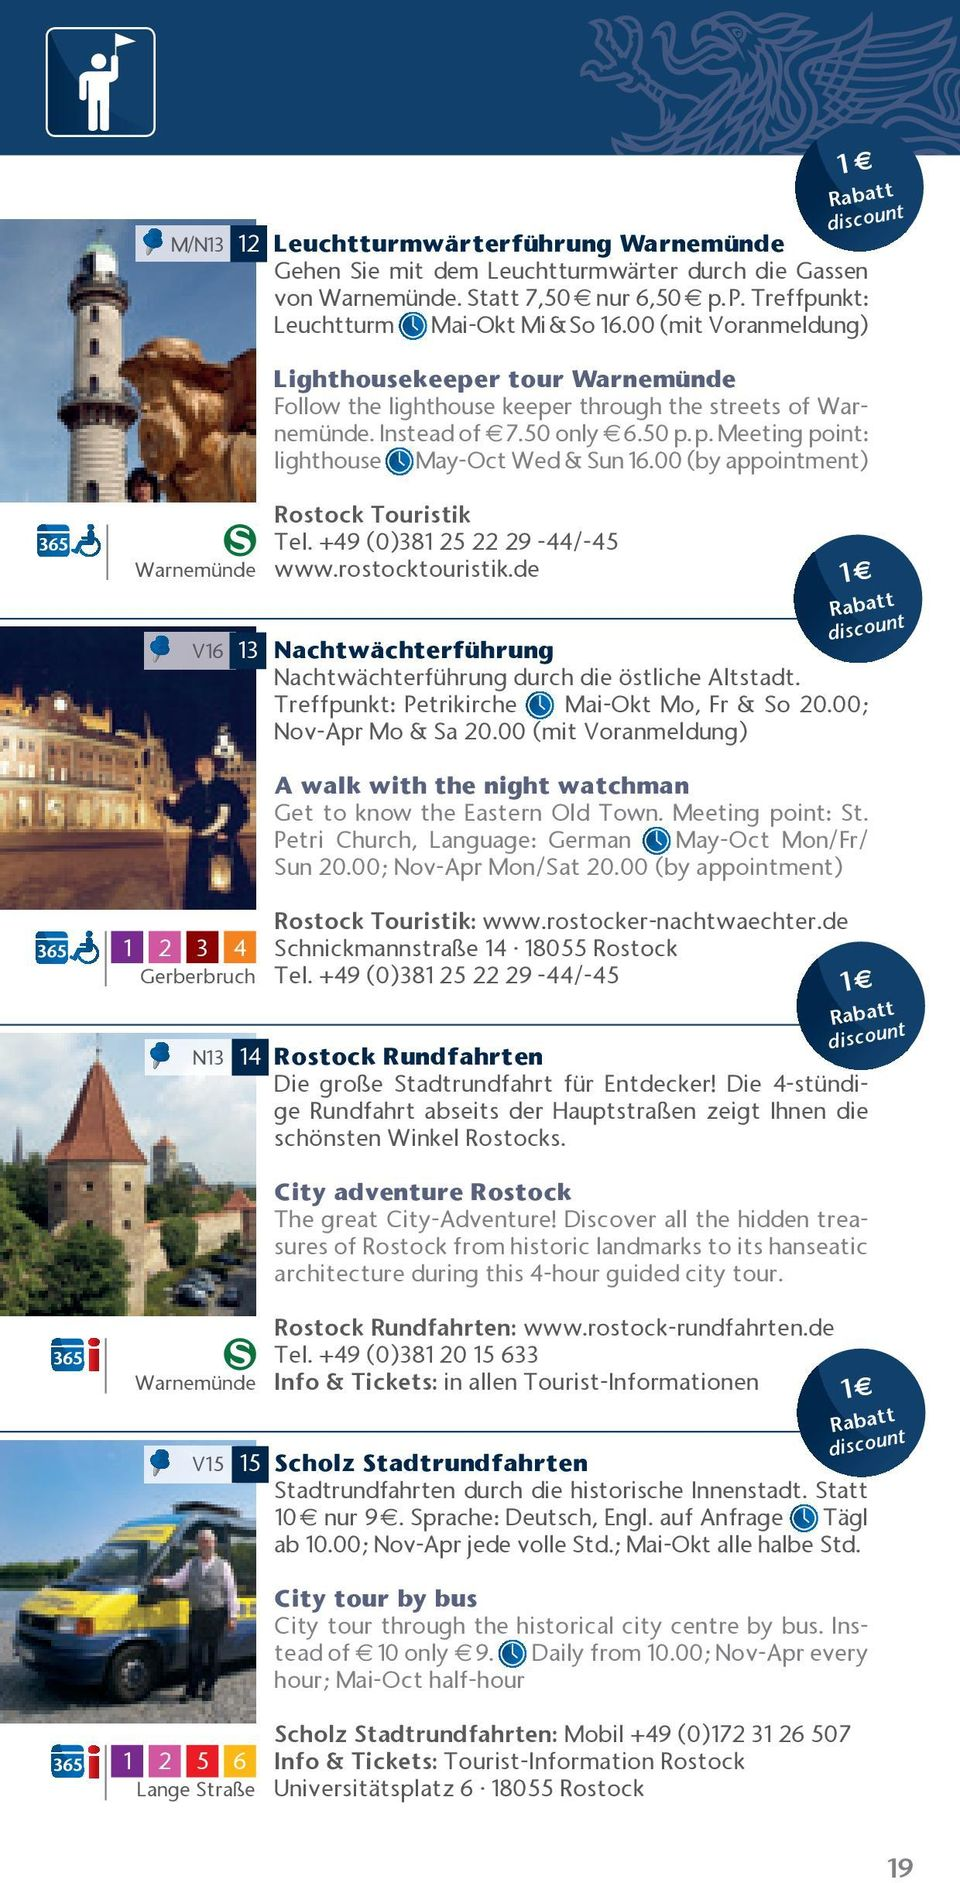 p. Meeting point: lighthouse May Oct Wed & Sun 16.00 (by appointment) Rostock Touristik Tel. +49 (0)381 25 22 29 44/ 45 www.rostocktouristik.